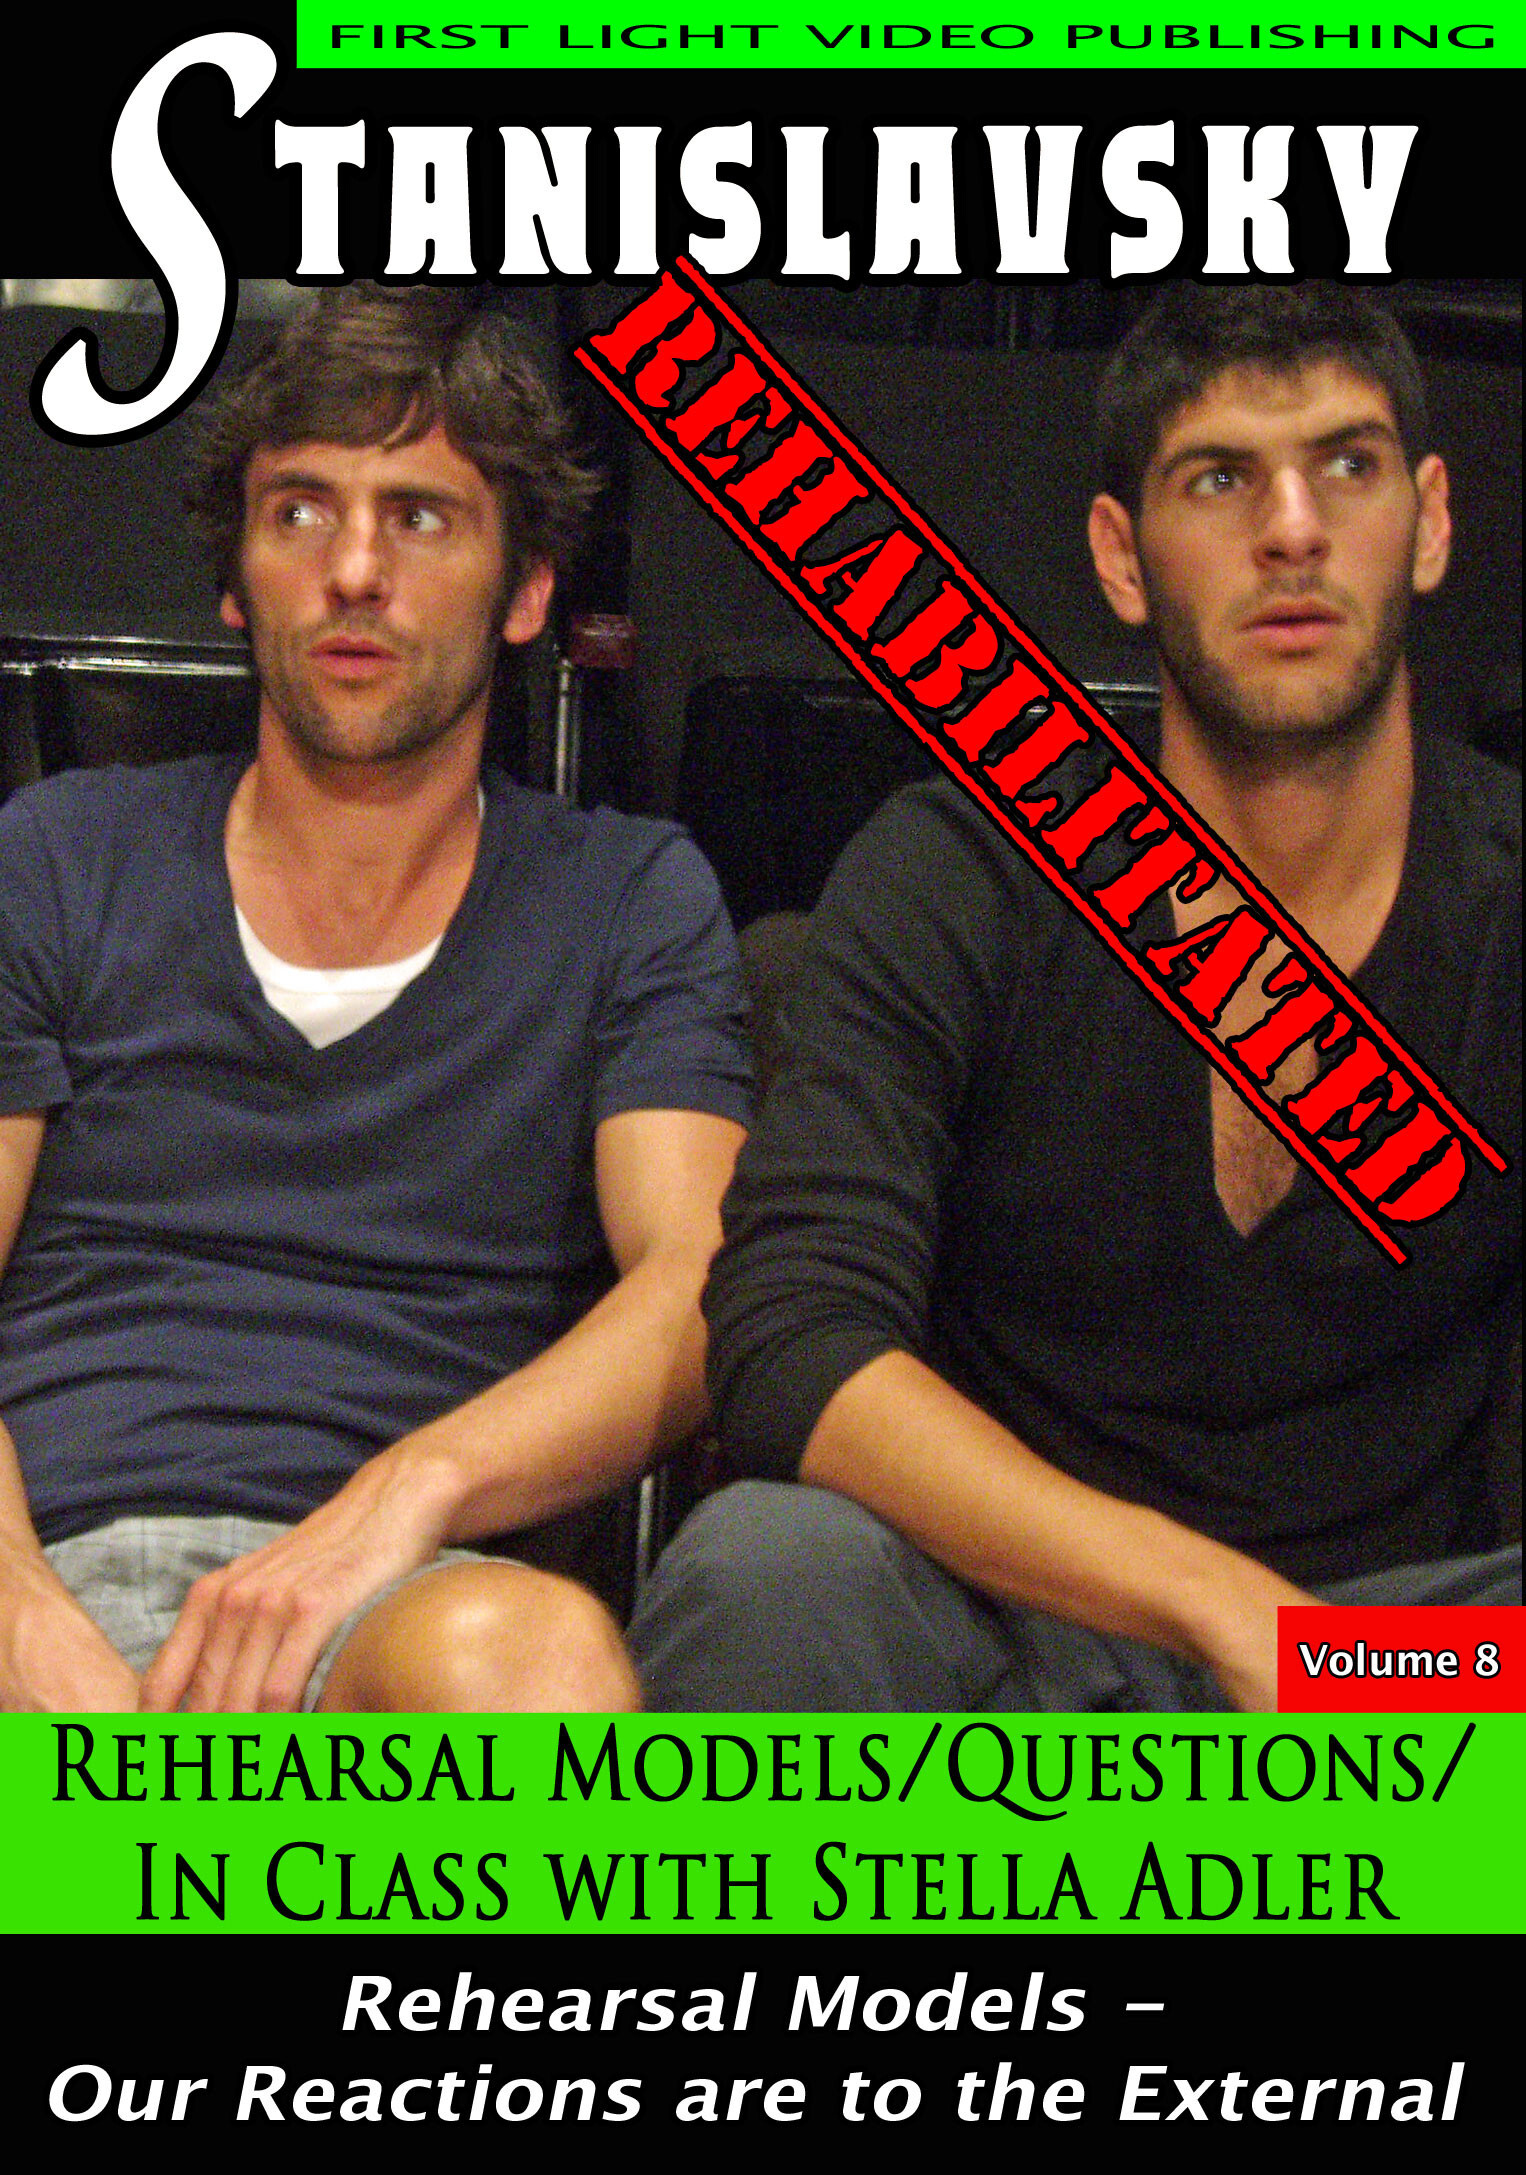 F2696 - Rehearsal Models, Questions and In Class With Stella Adler